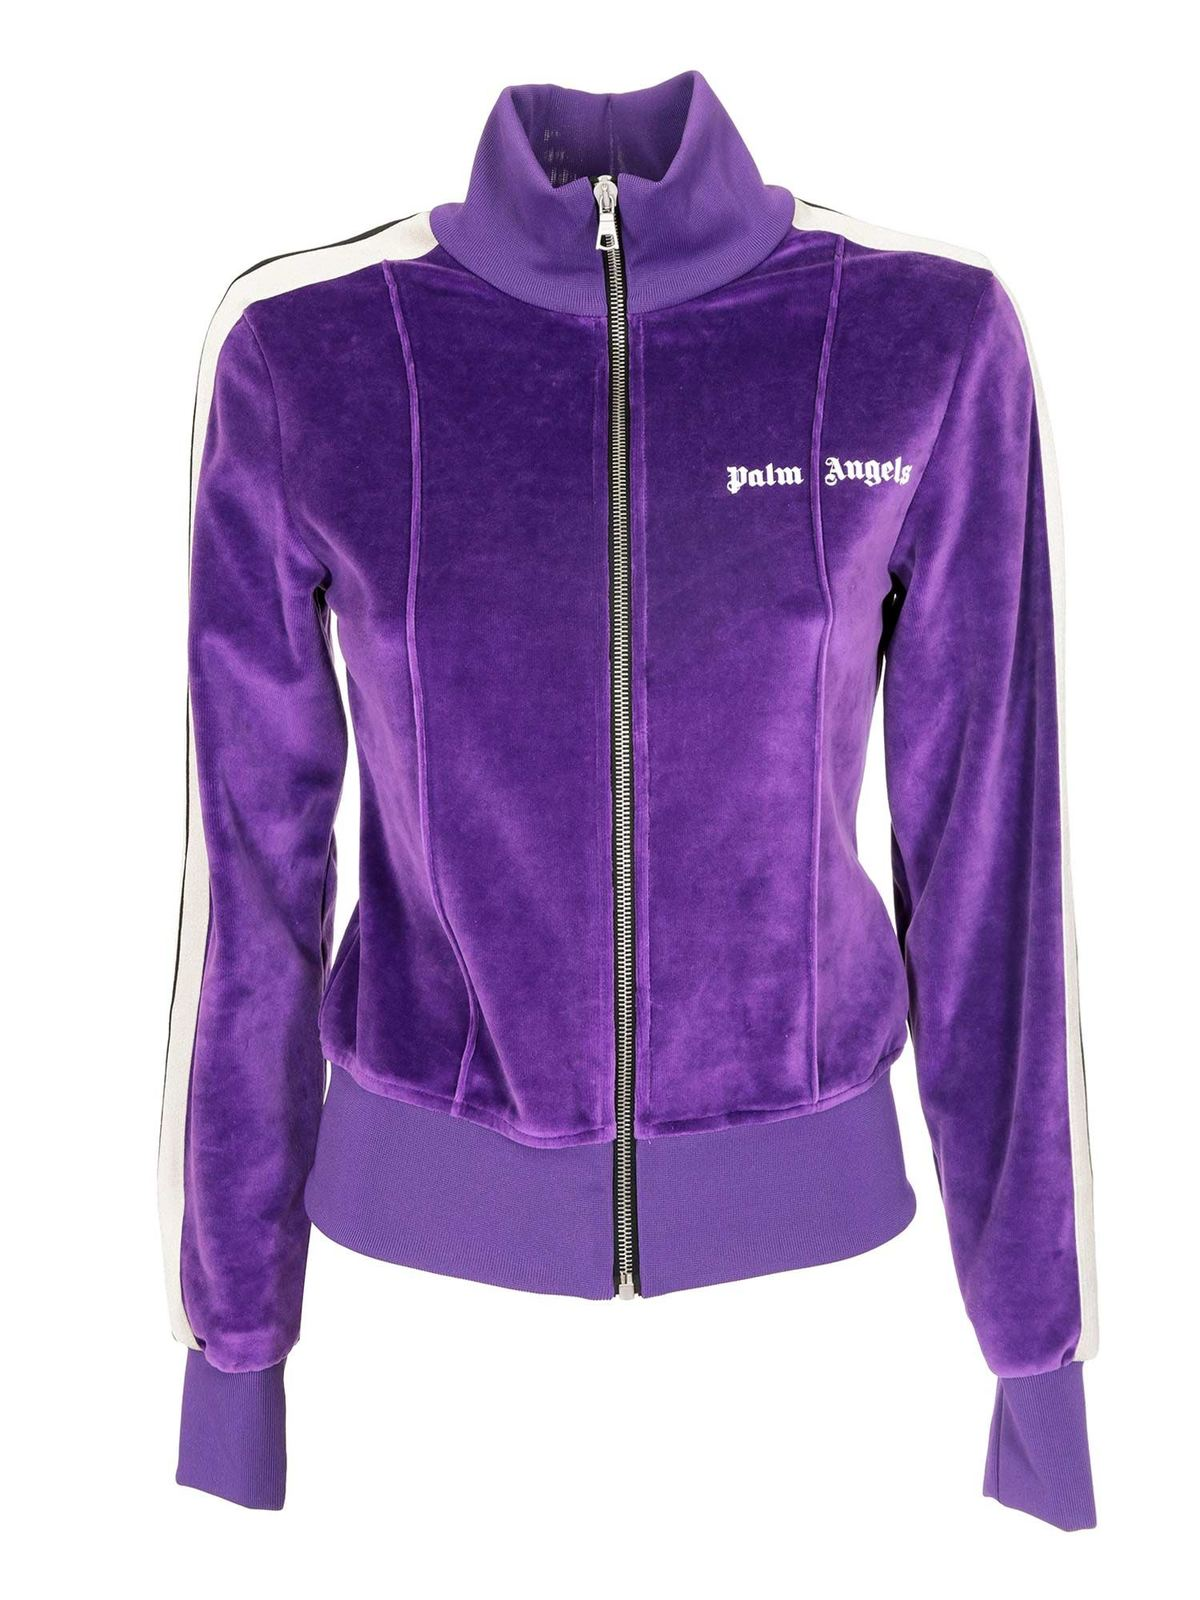 Palm Angels FITTED TRACK JACKET IN PURPLE